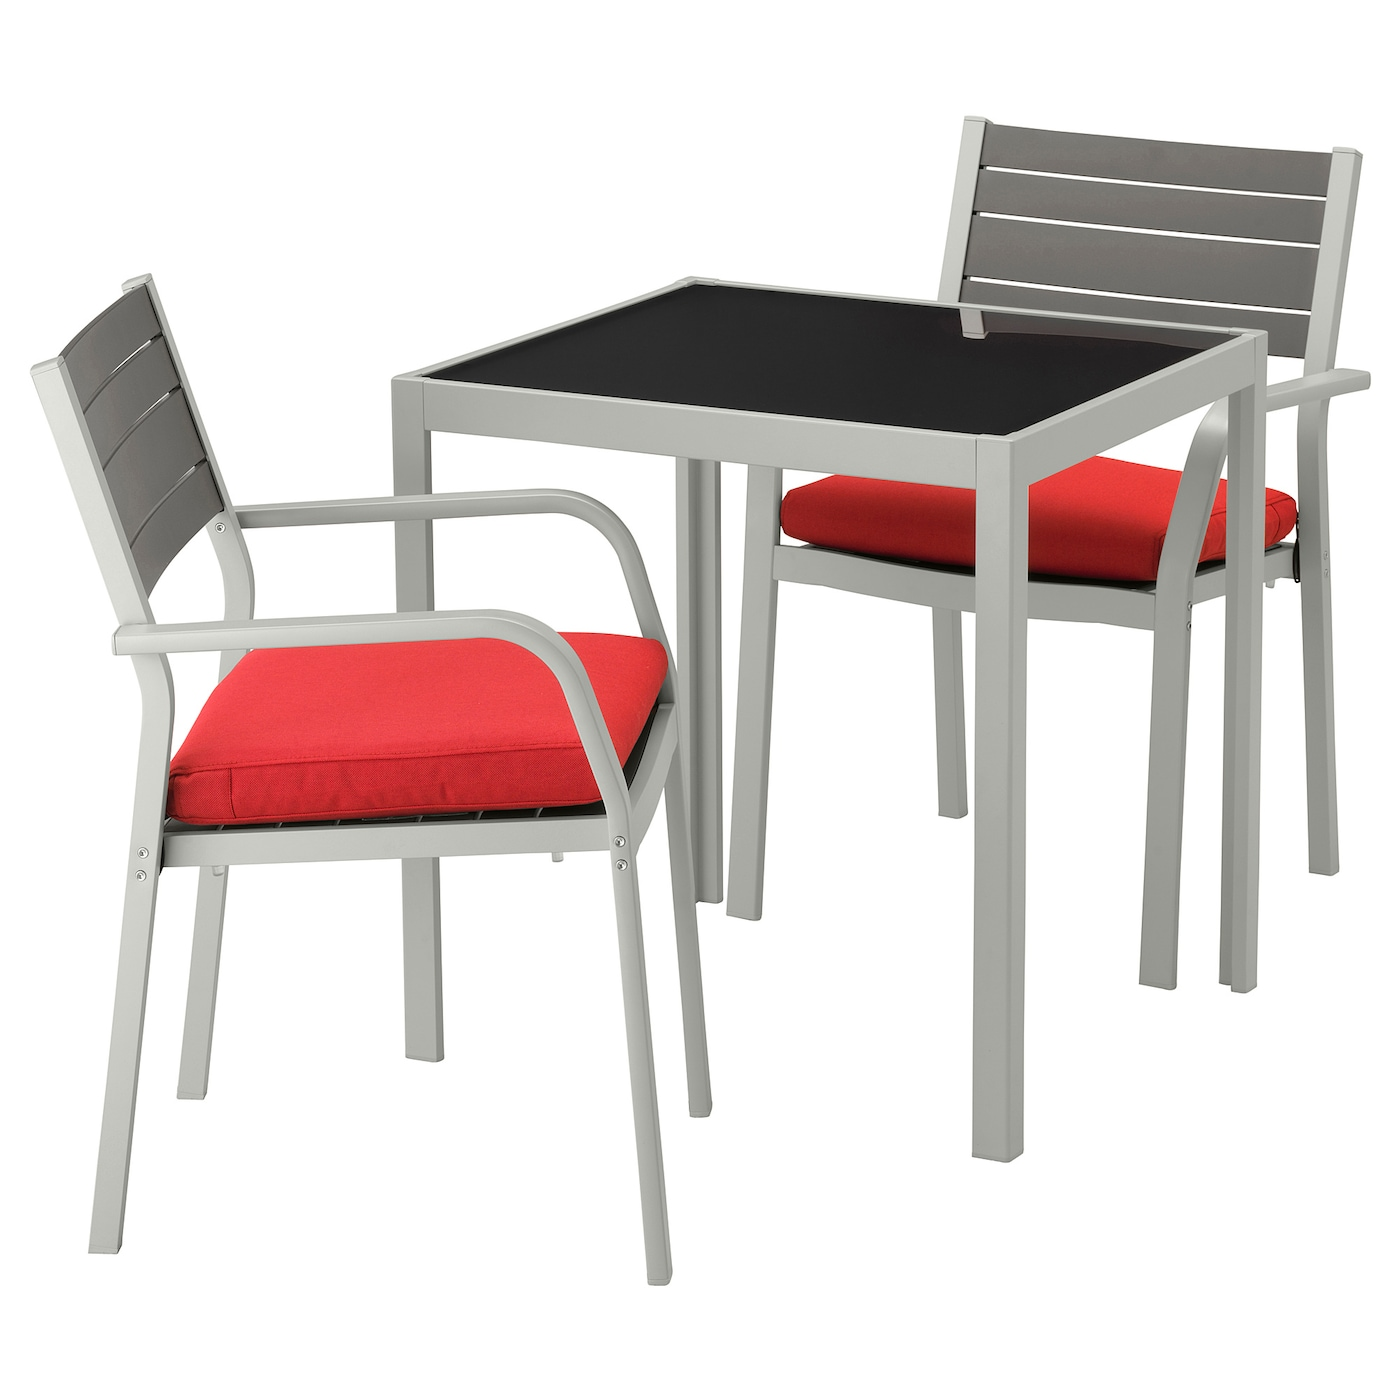 IKEA SJÄLLAND table+2 chairs w armrests, outdoor